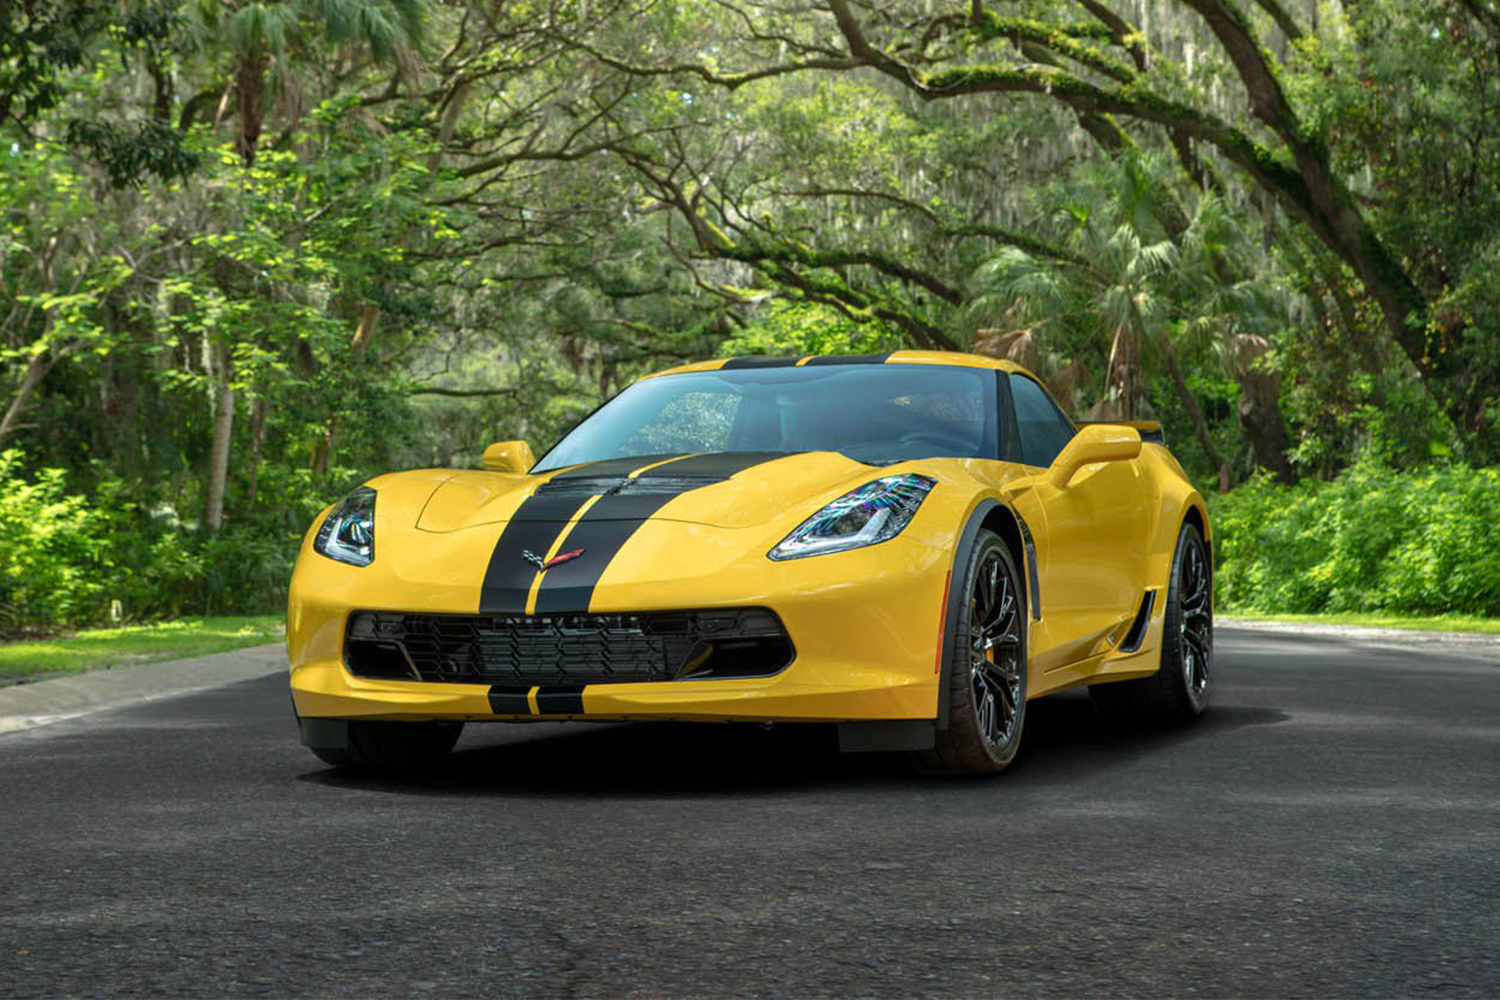 2019 Chevrolet Corvette Z06 Hertz 100th Anniversary Edition